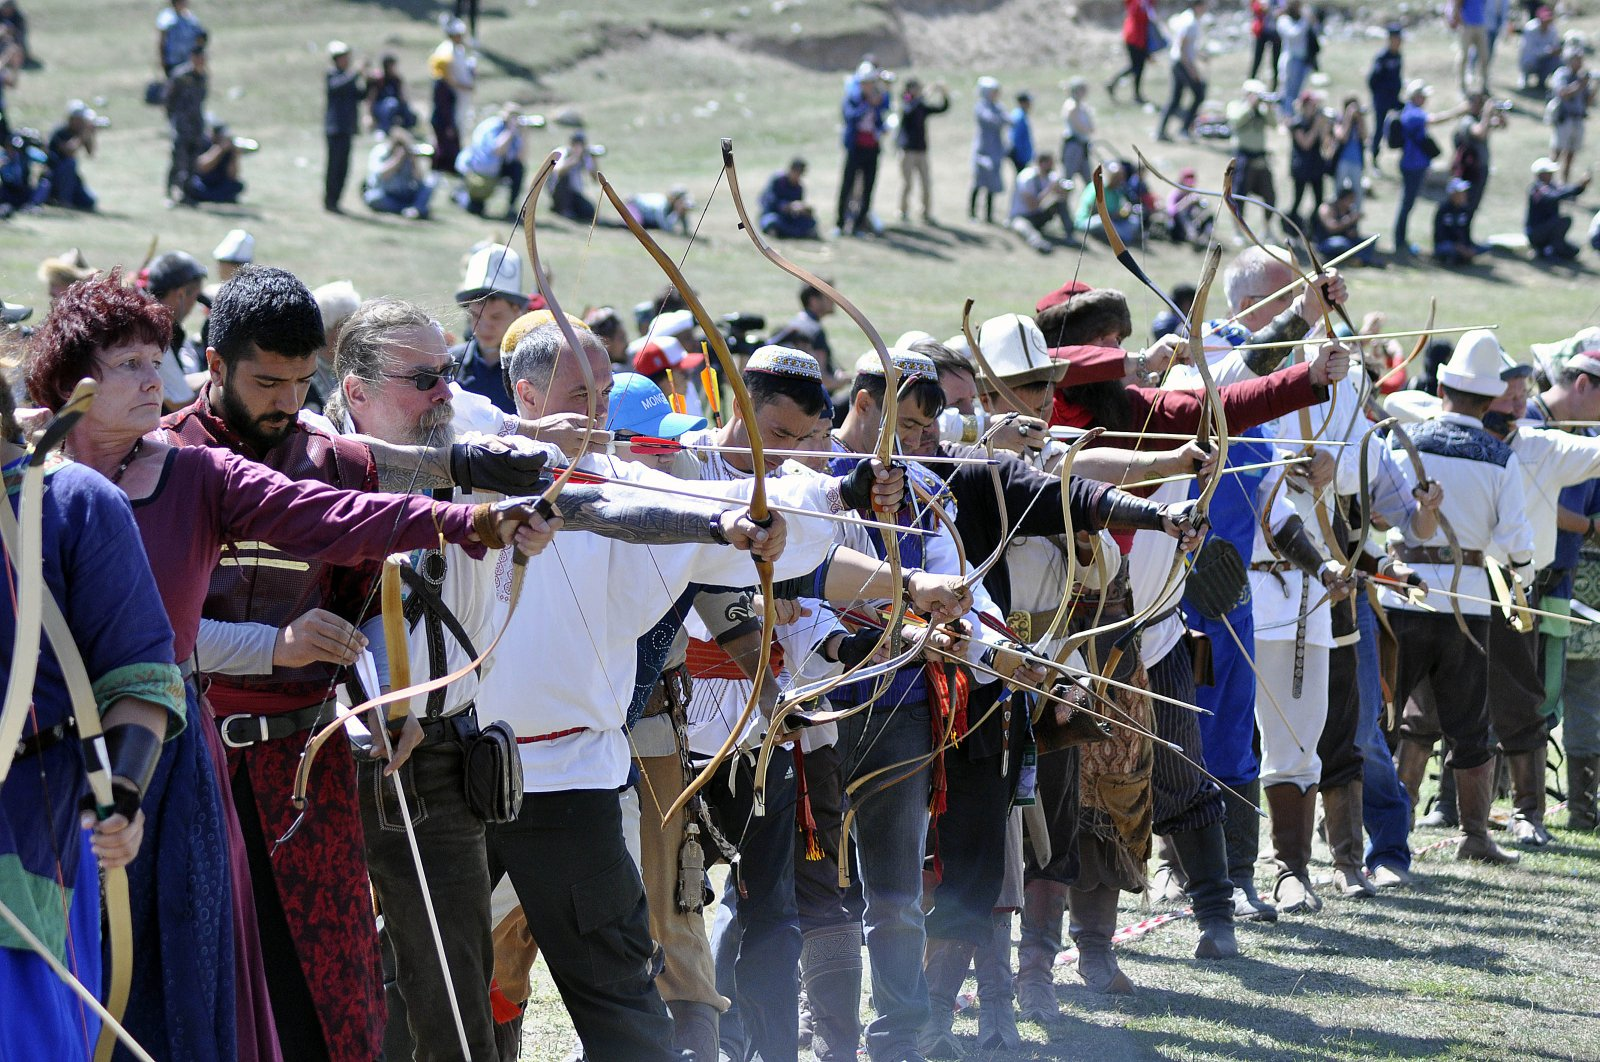 Last year's World Nomad Games was held in Kyrgyzstan. (AA Photo)